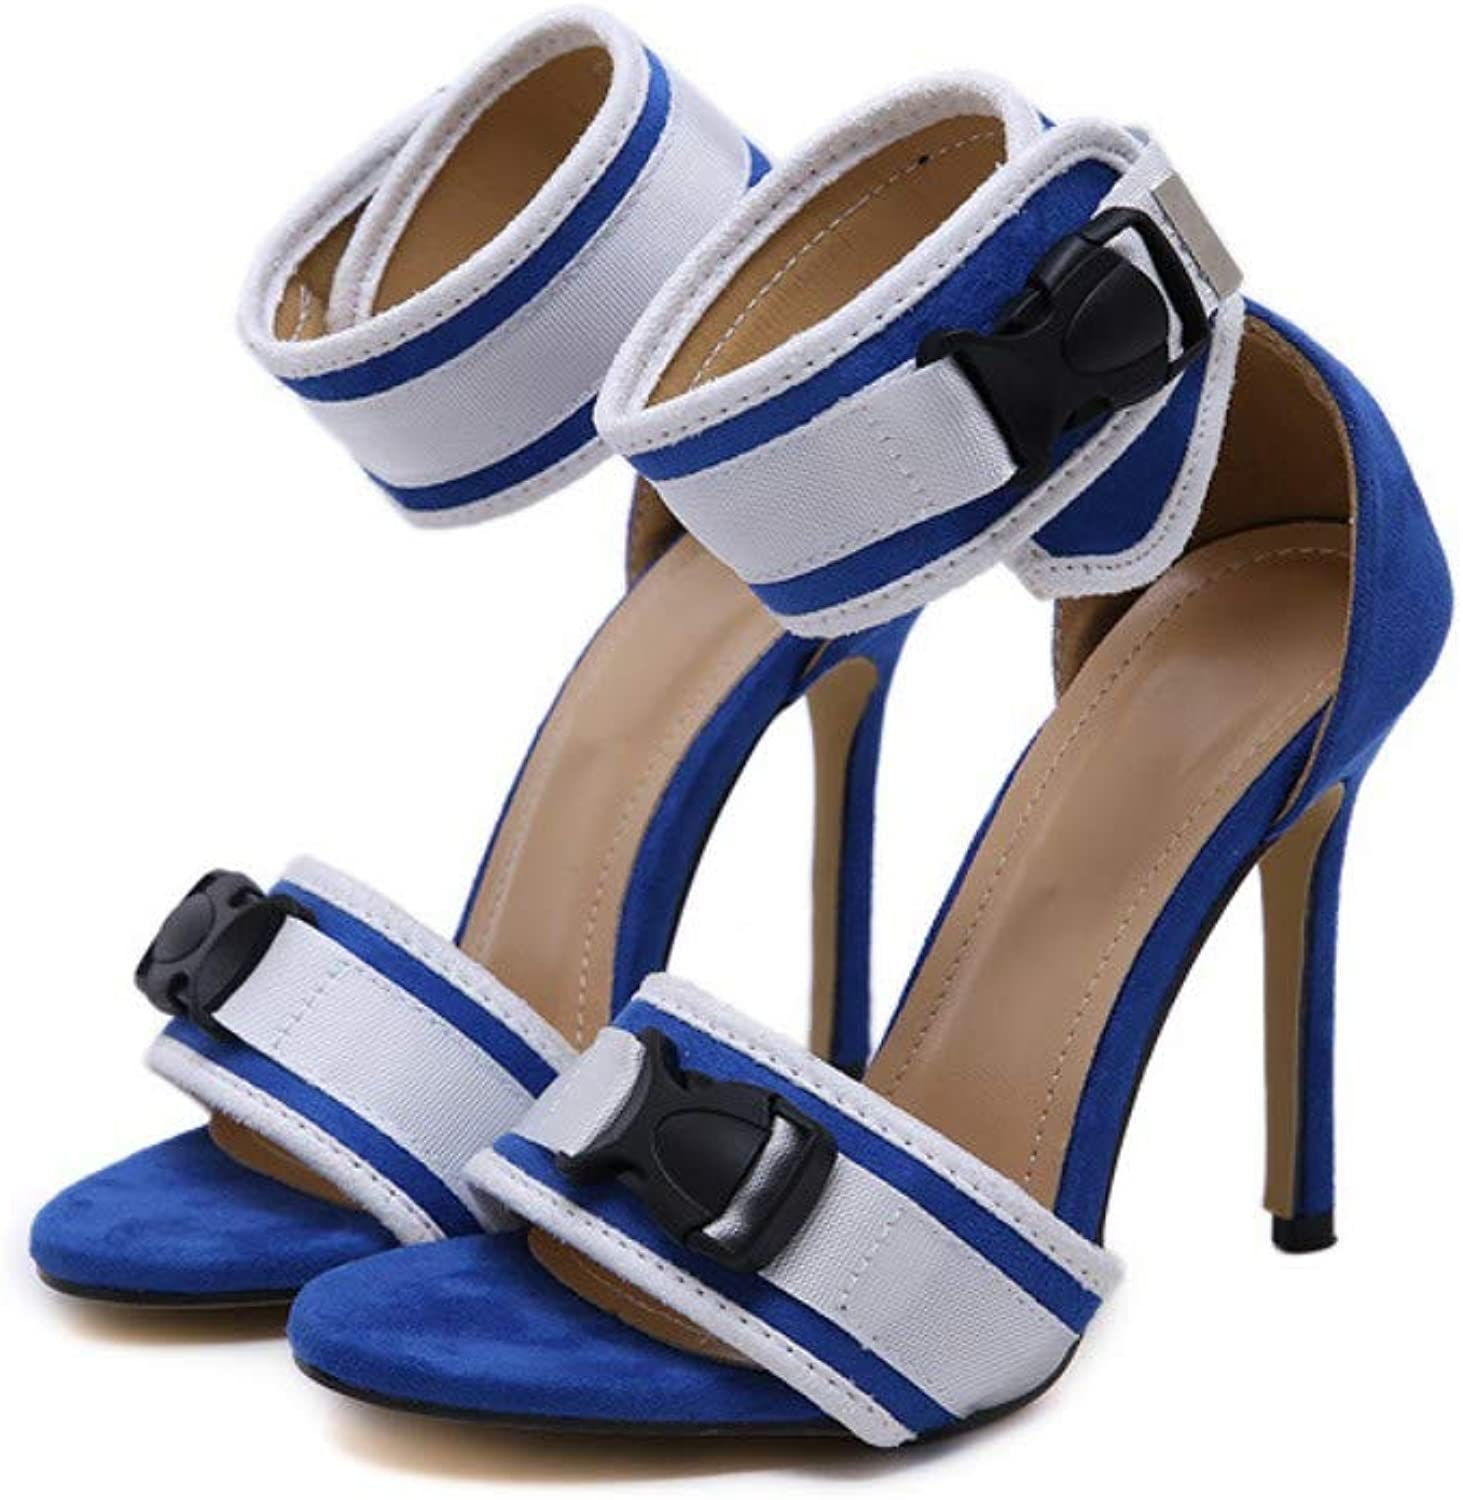 JQfashion Women's High-Heeled shoes Fishmouth High-Heeled Sandals Sexy Pointed Thin-Heeled Buckled Roman shoes